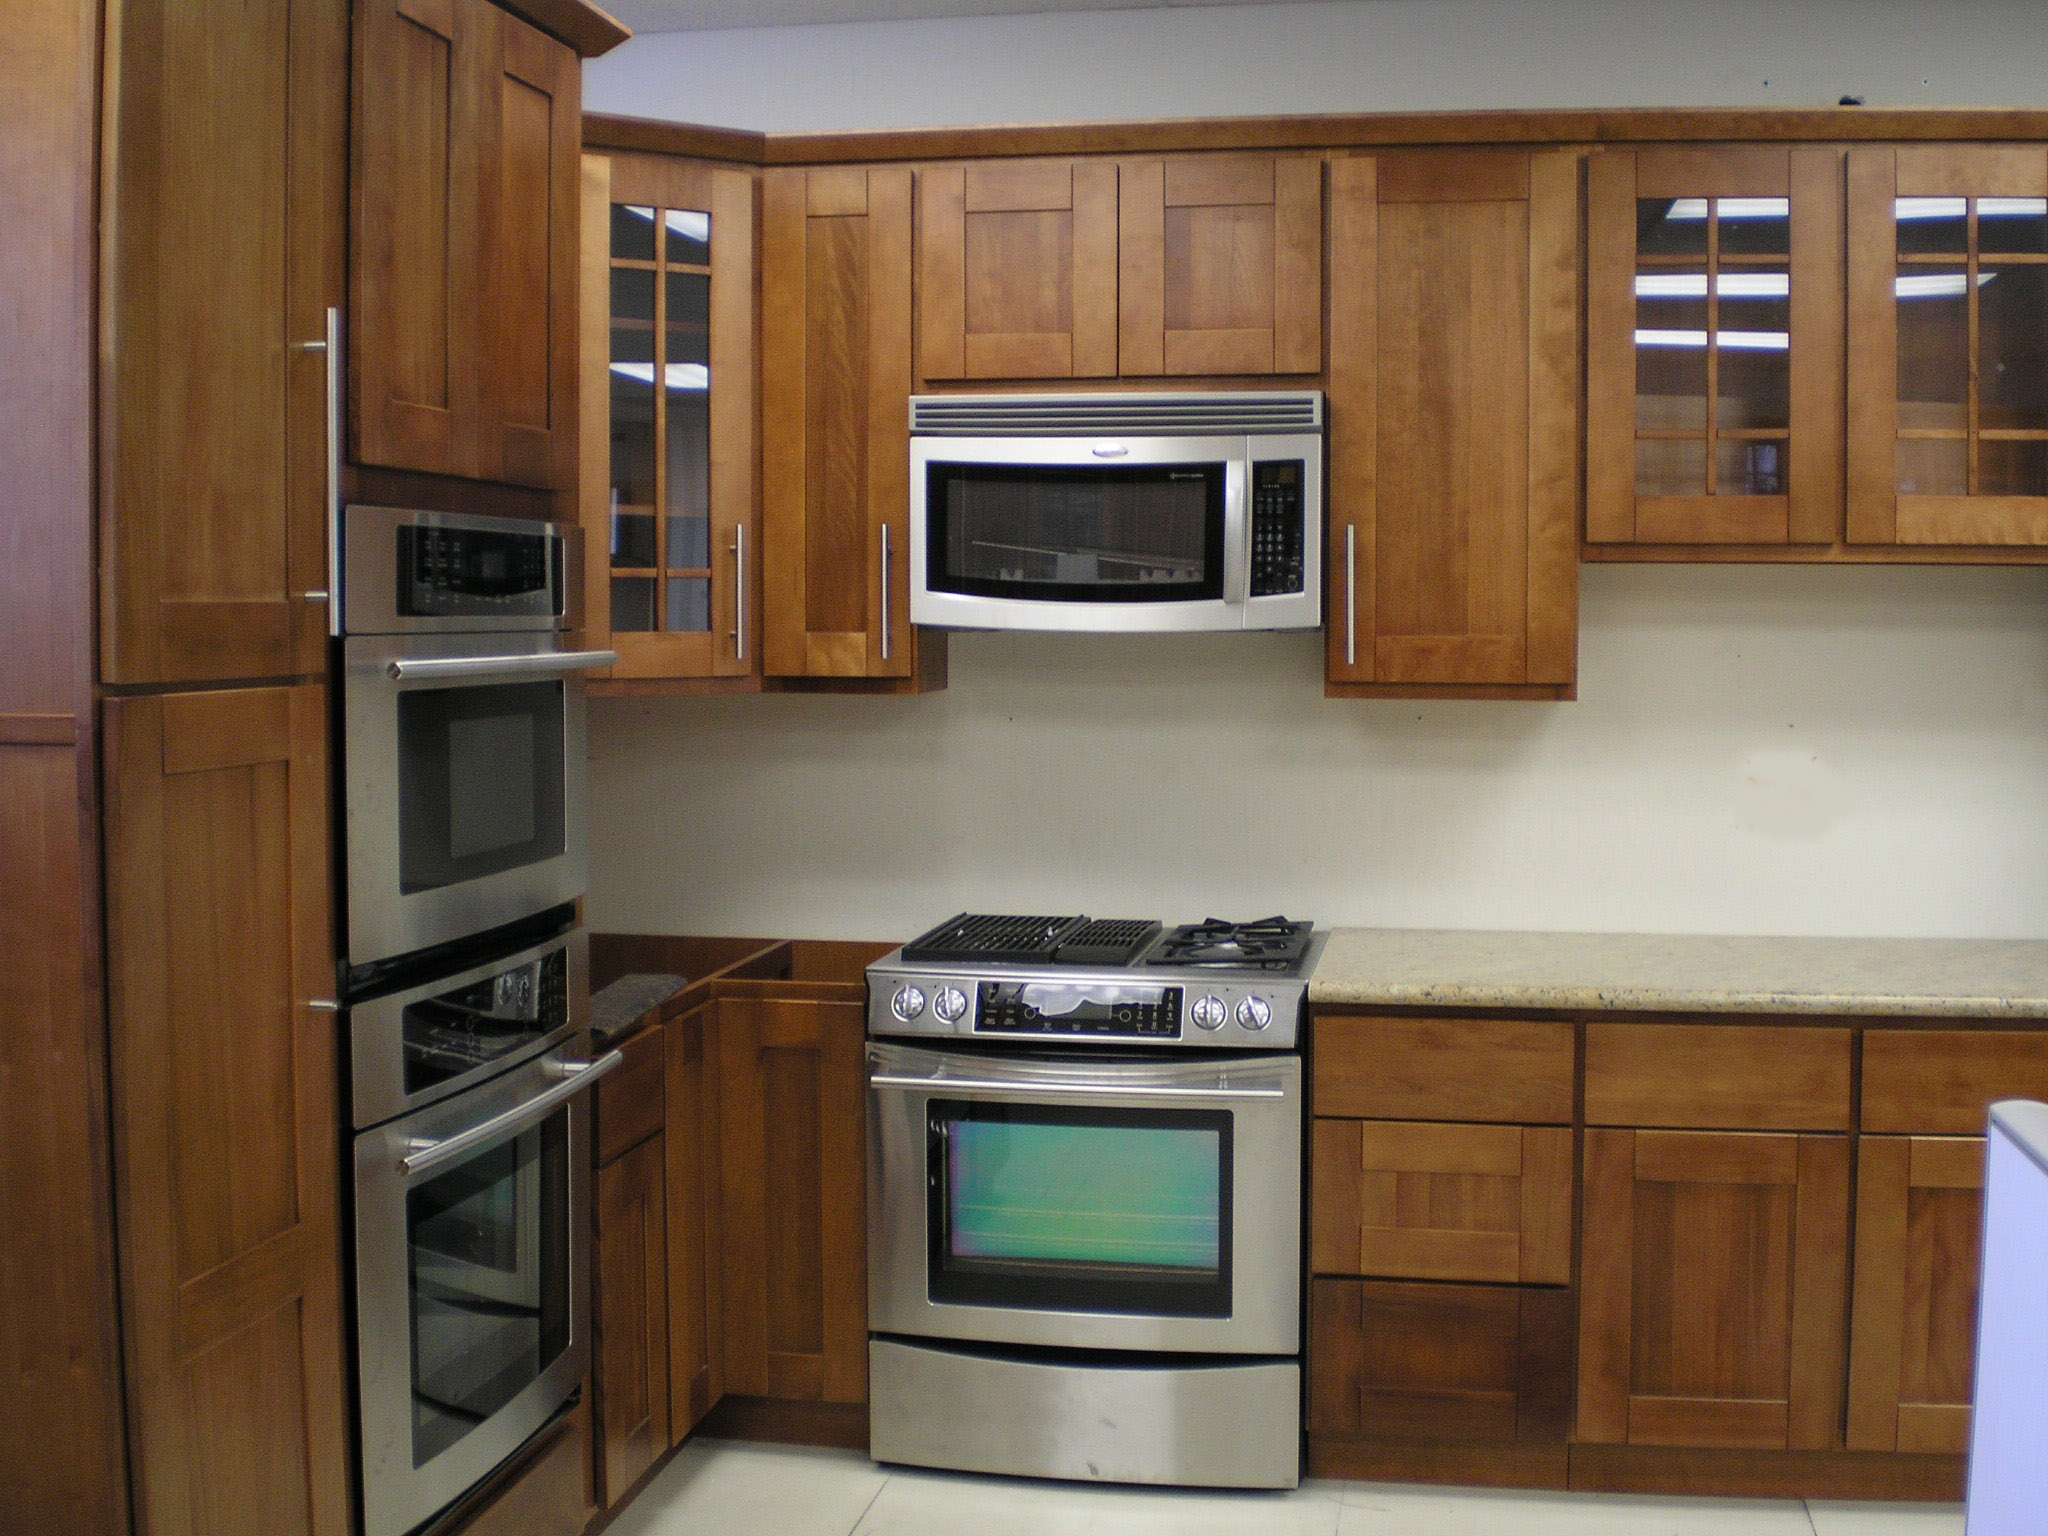 Microwave Oven Kitchen Cabinets